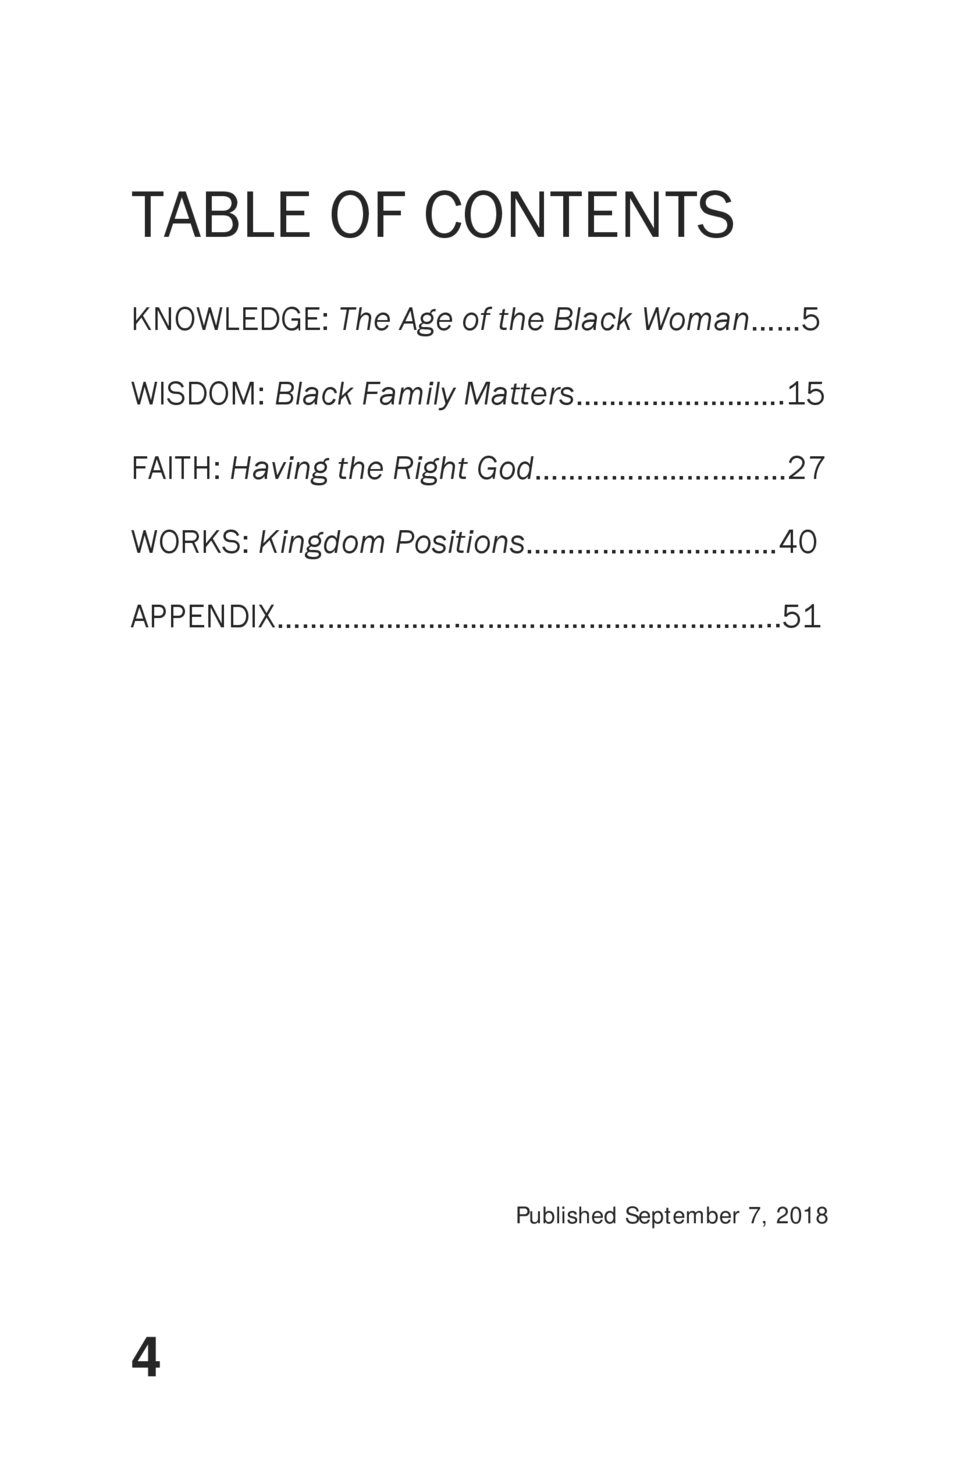 TABLE OF CONTENTS KNOWLEDGE  The Age of the Black Woman      5 WISDOM  Black Family Matters                        .15 FAI...